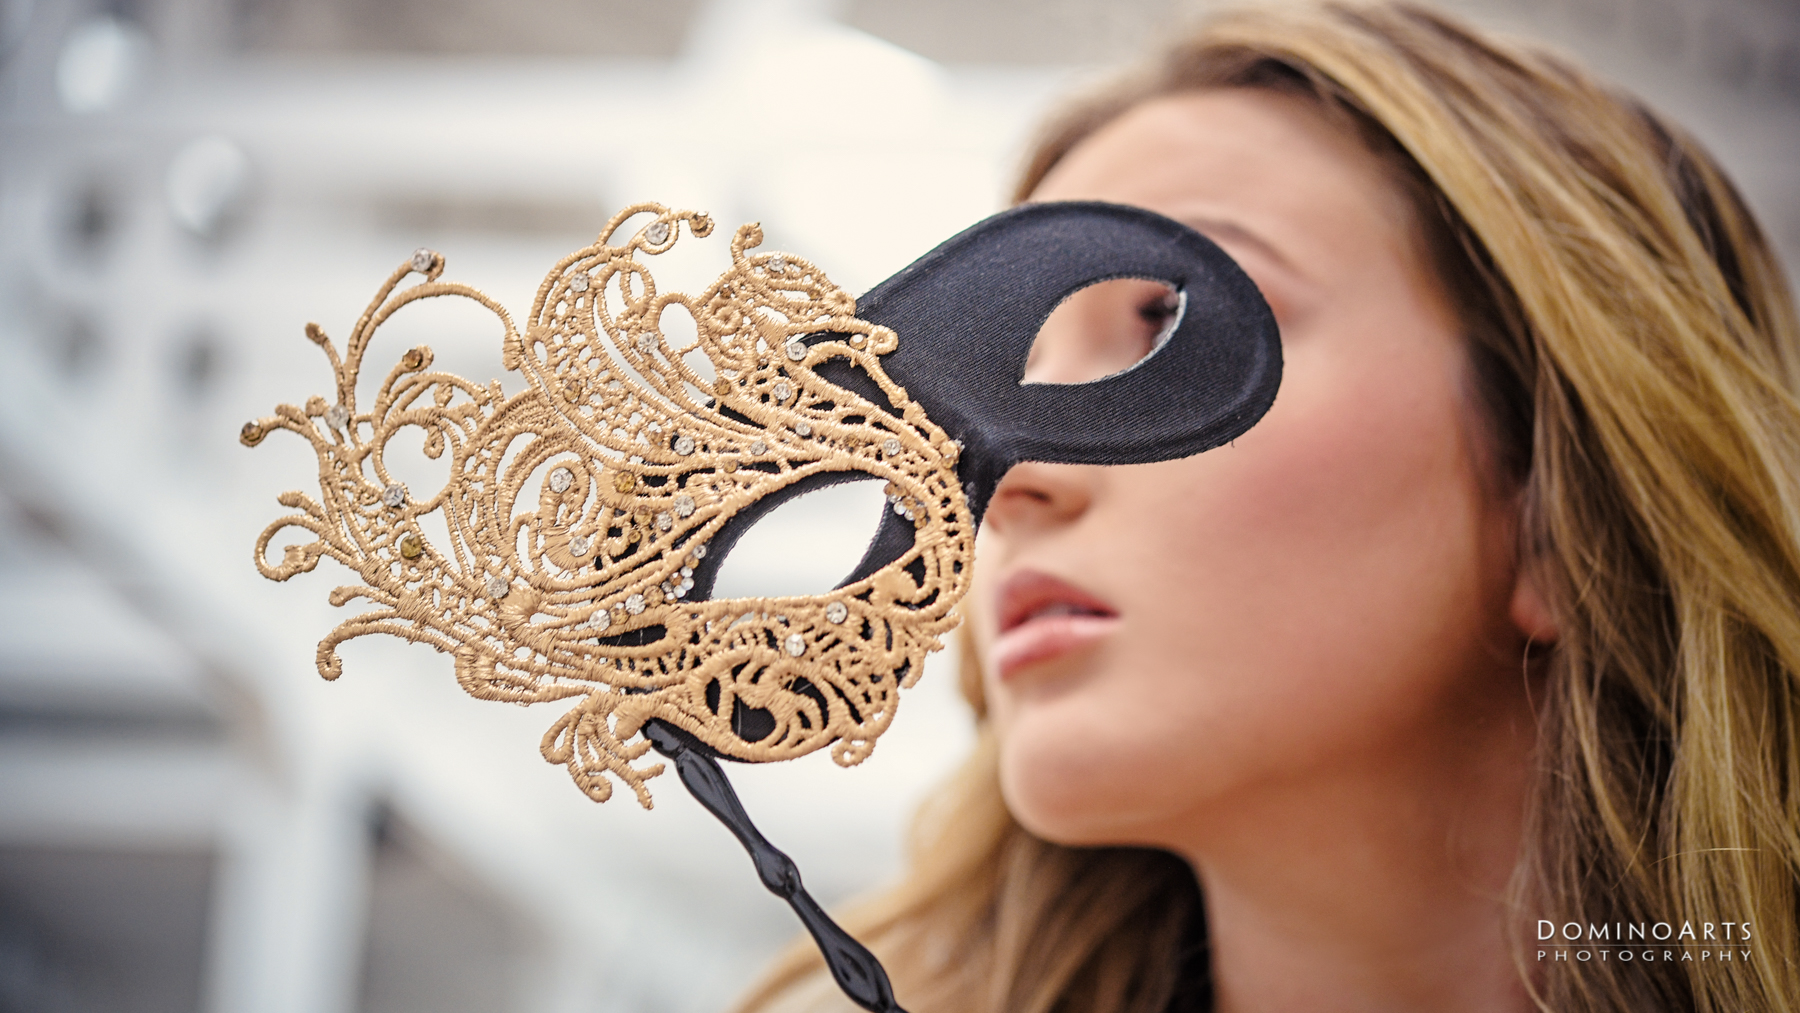 Masquerade theme Trendy Luxury Pre Session Photography at Little River Studios